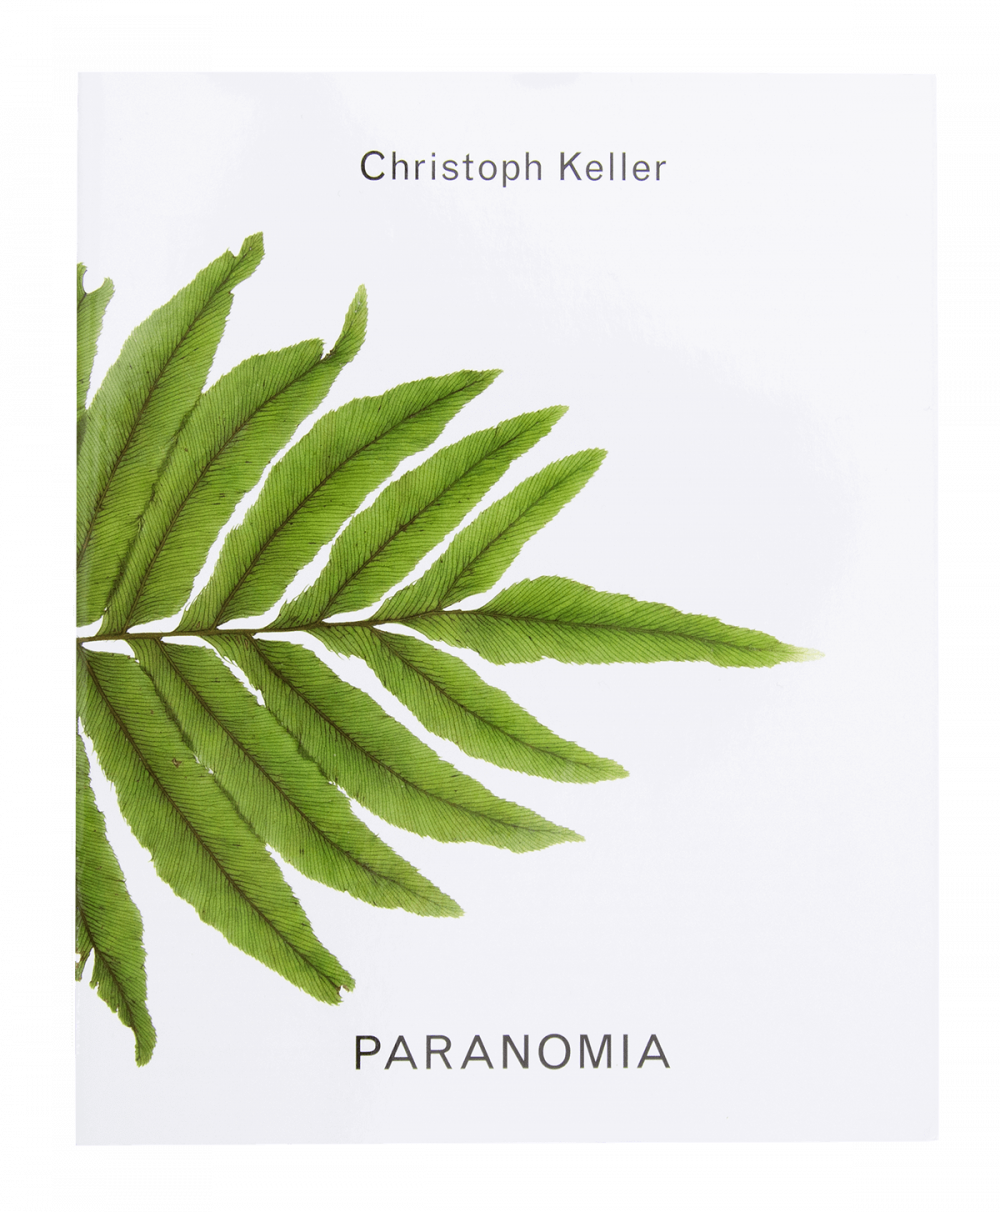 Paranomia, by Christoph Keller